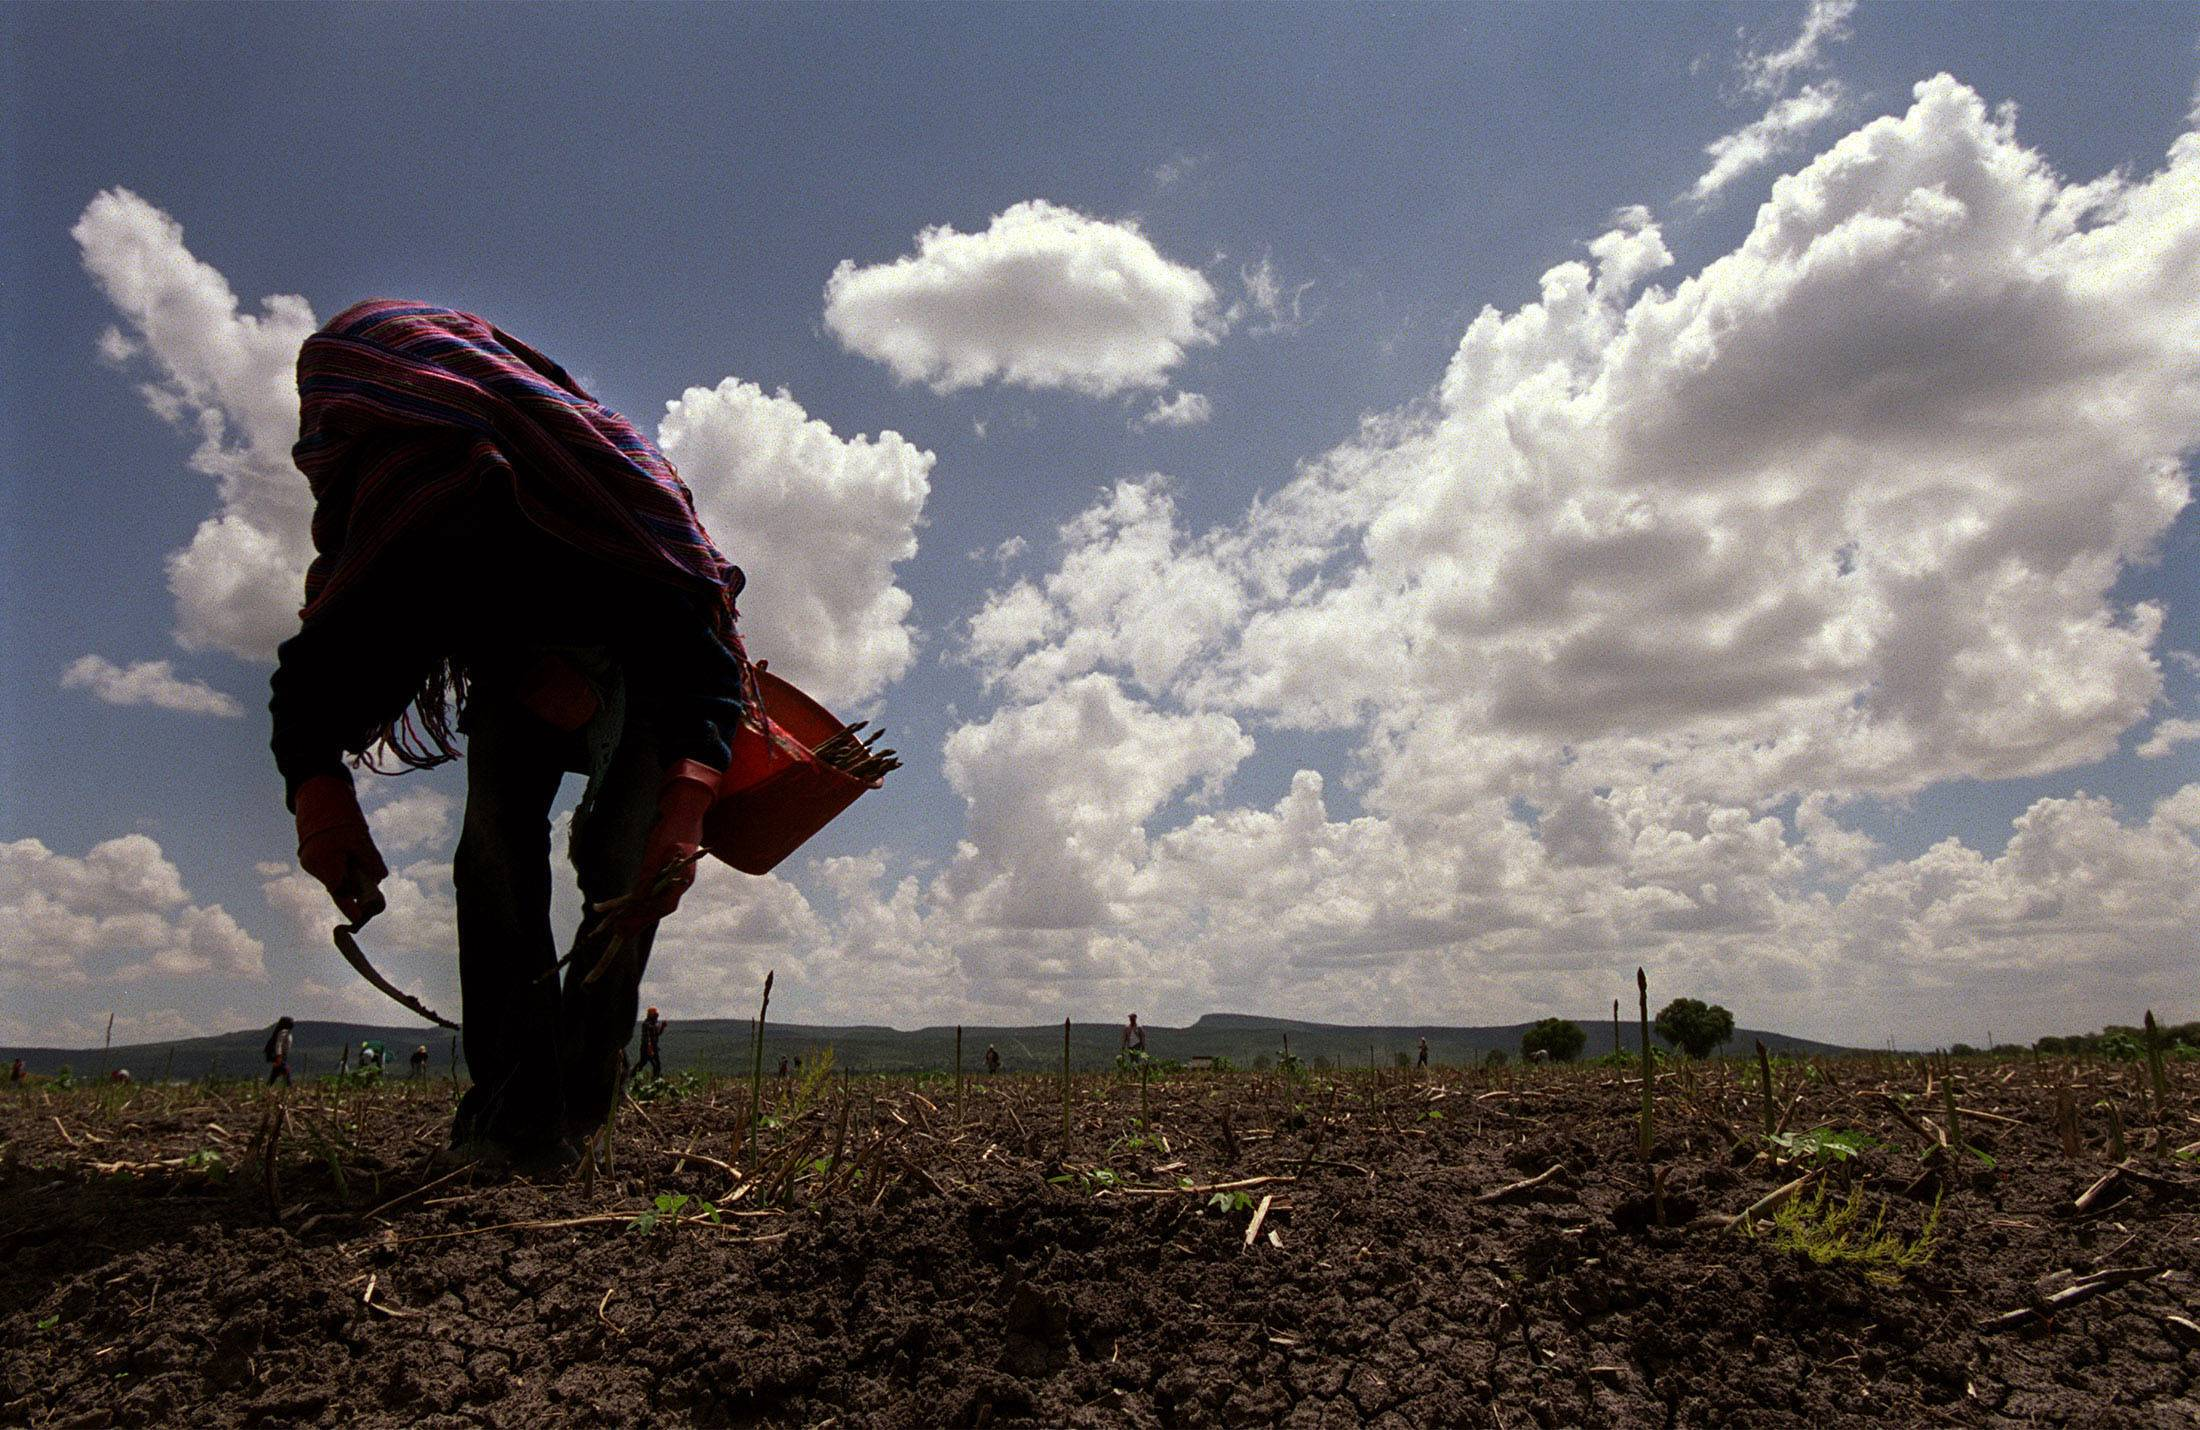 18-year-old Nadia Tovar harvests asparagus in a field in Guanajuato for roughly one-sixth of what workers would earn in the U.S. Nadia quit school several years ago to earn more money for her family.